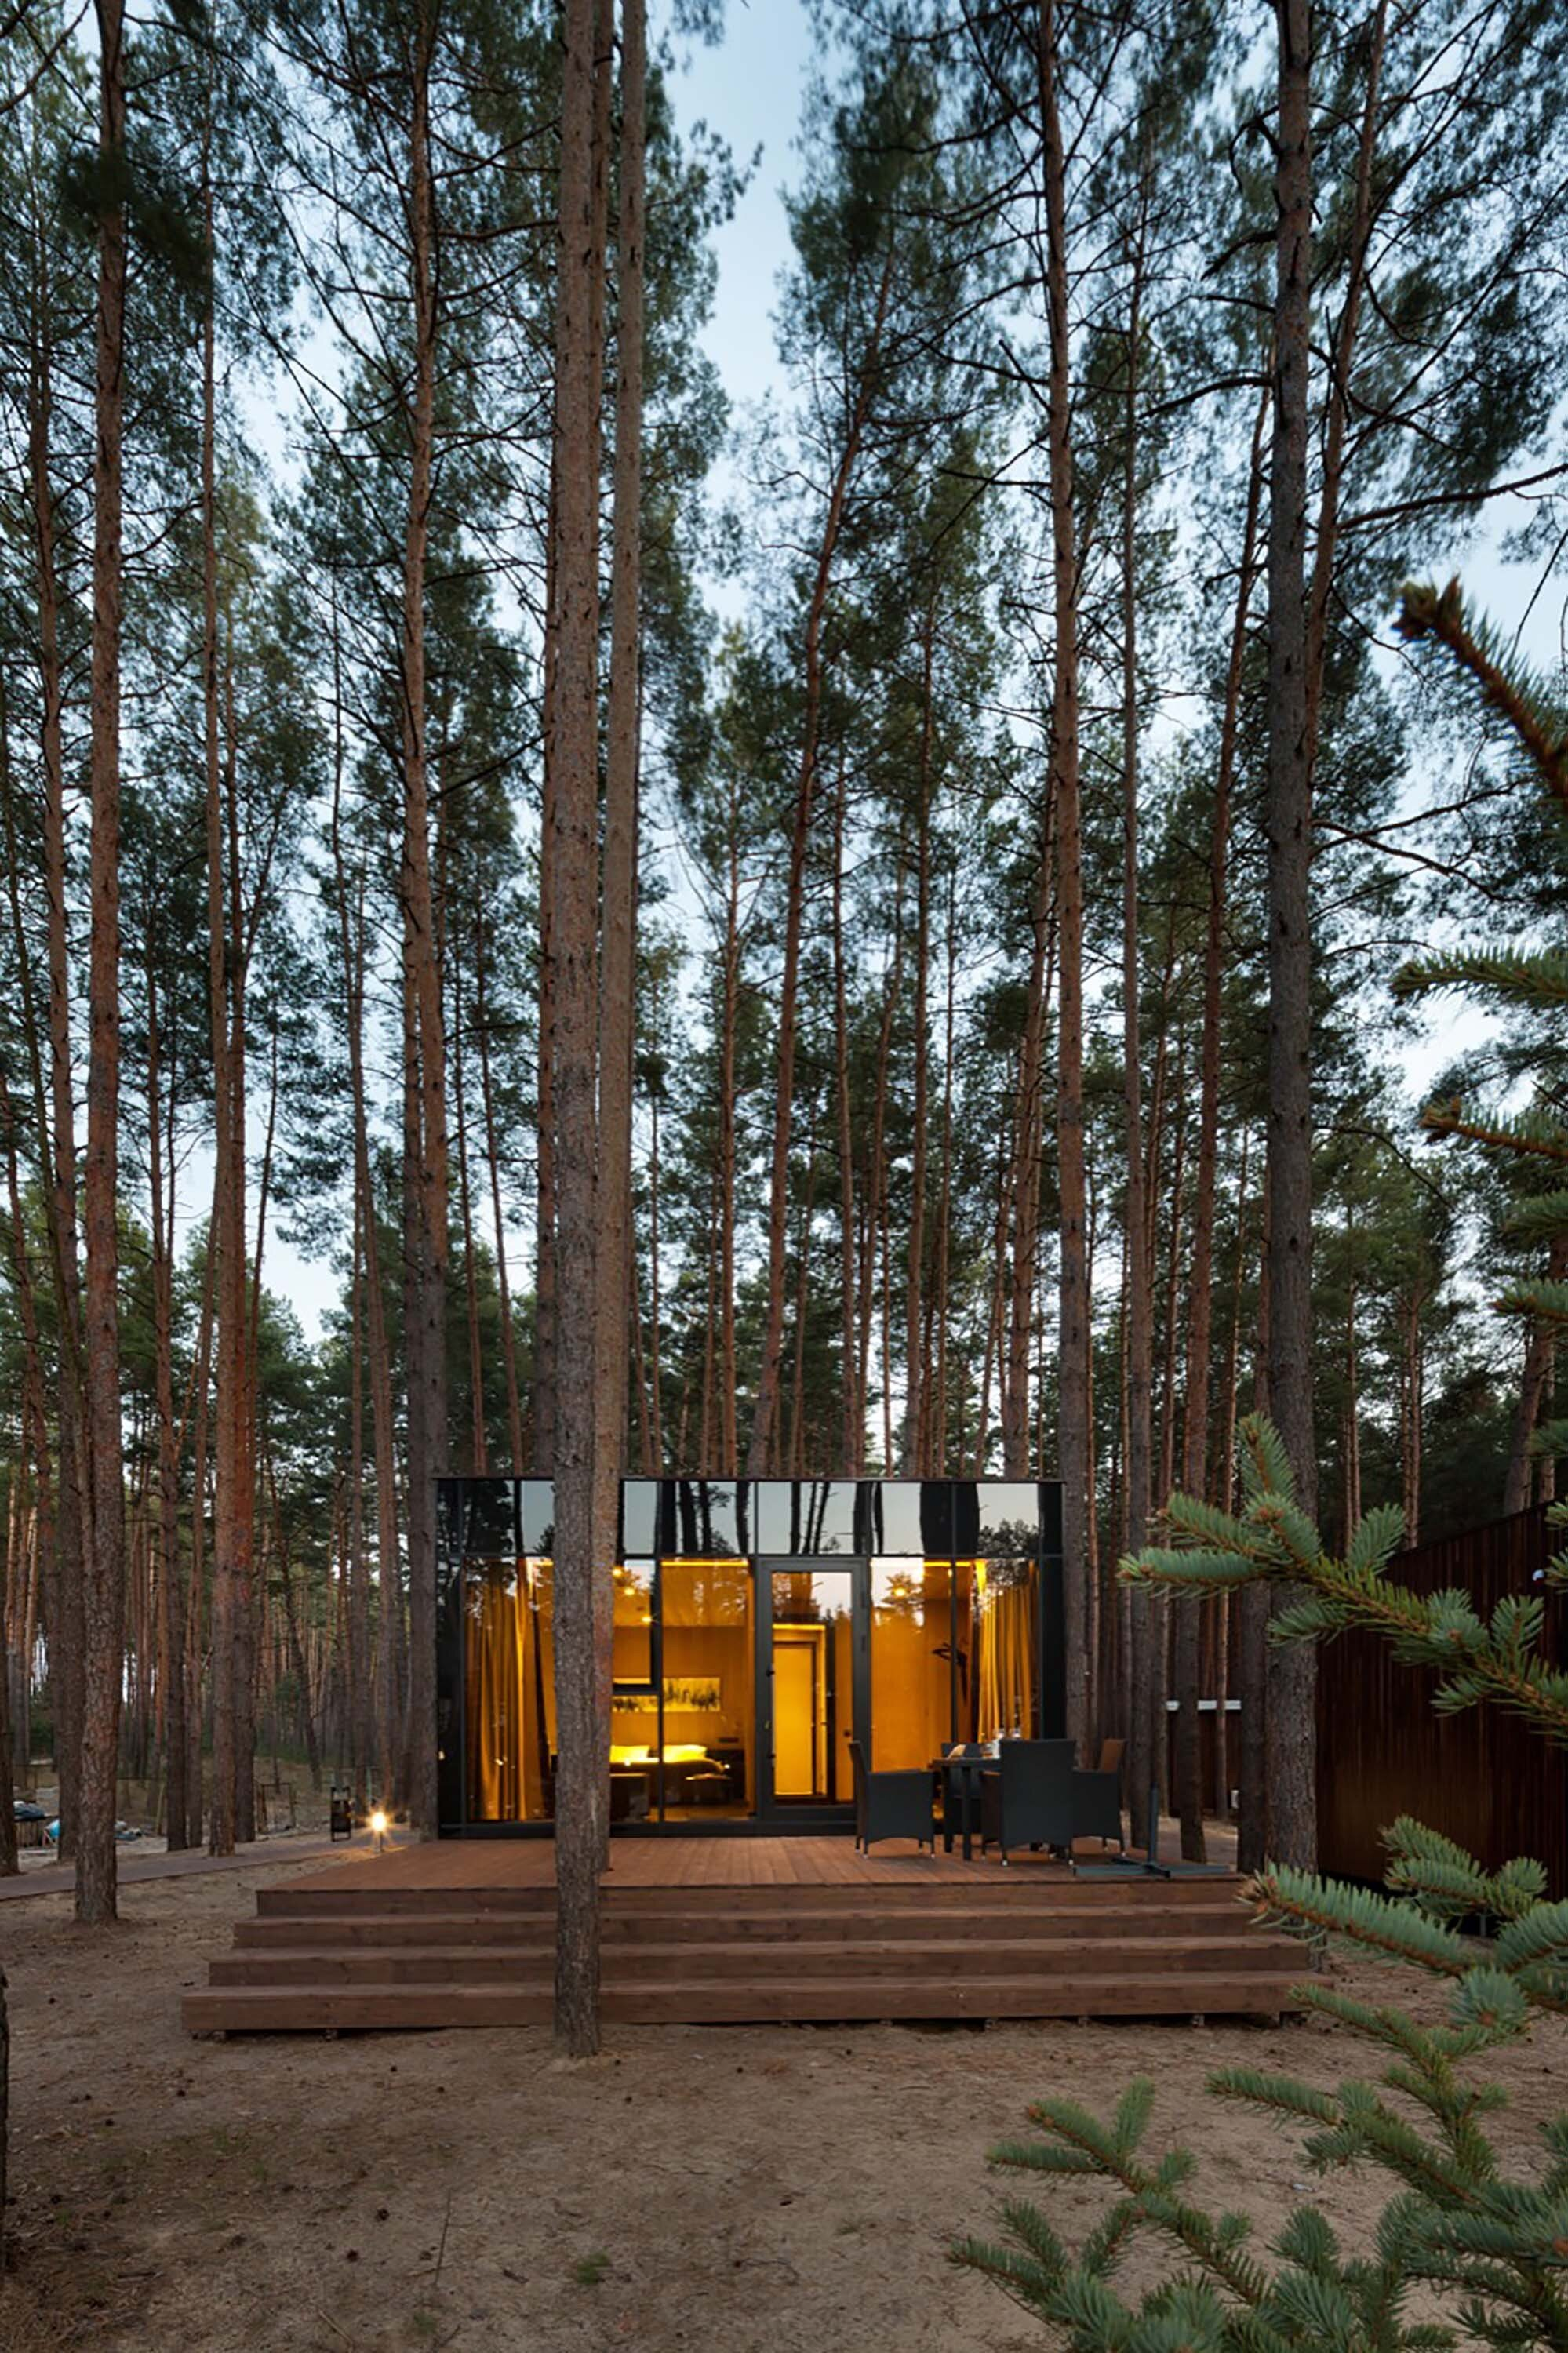 Guest Houses - Relax Park Verholy - YOD Dеsign Lab - Ukraine - Exterior - Humble Homes